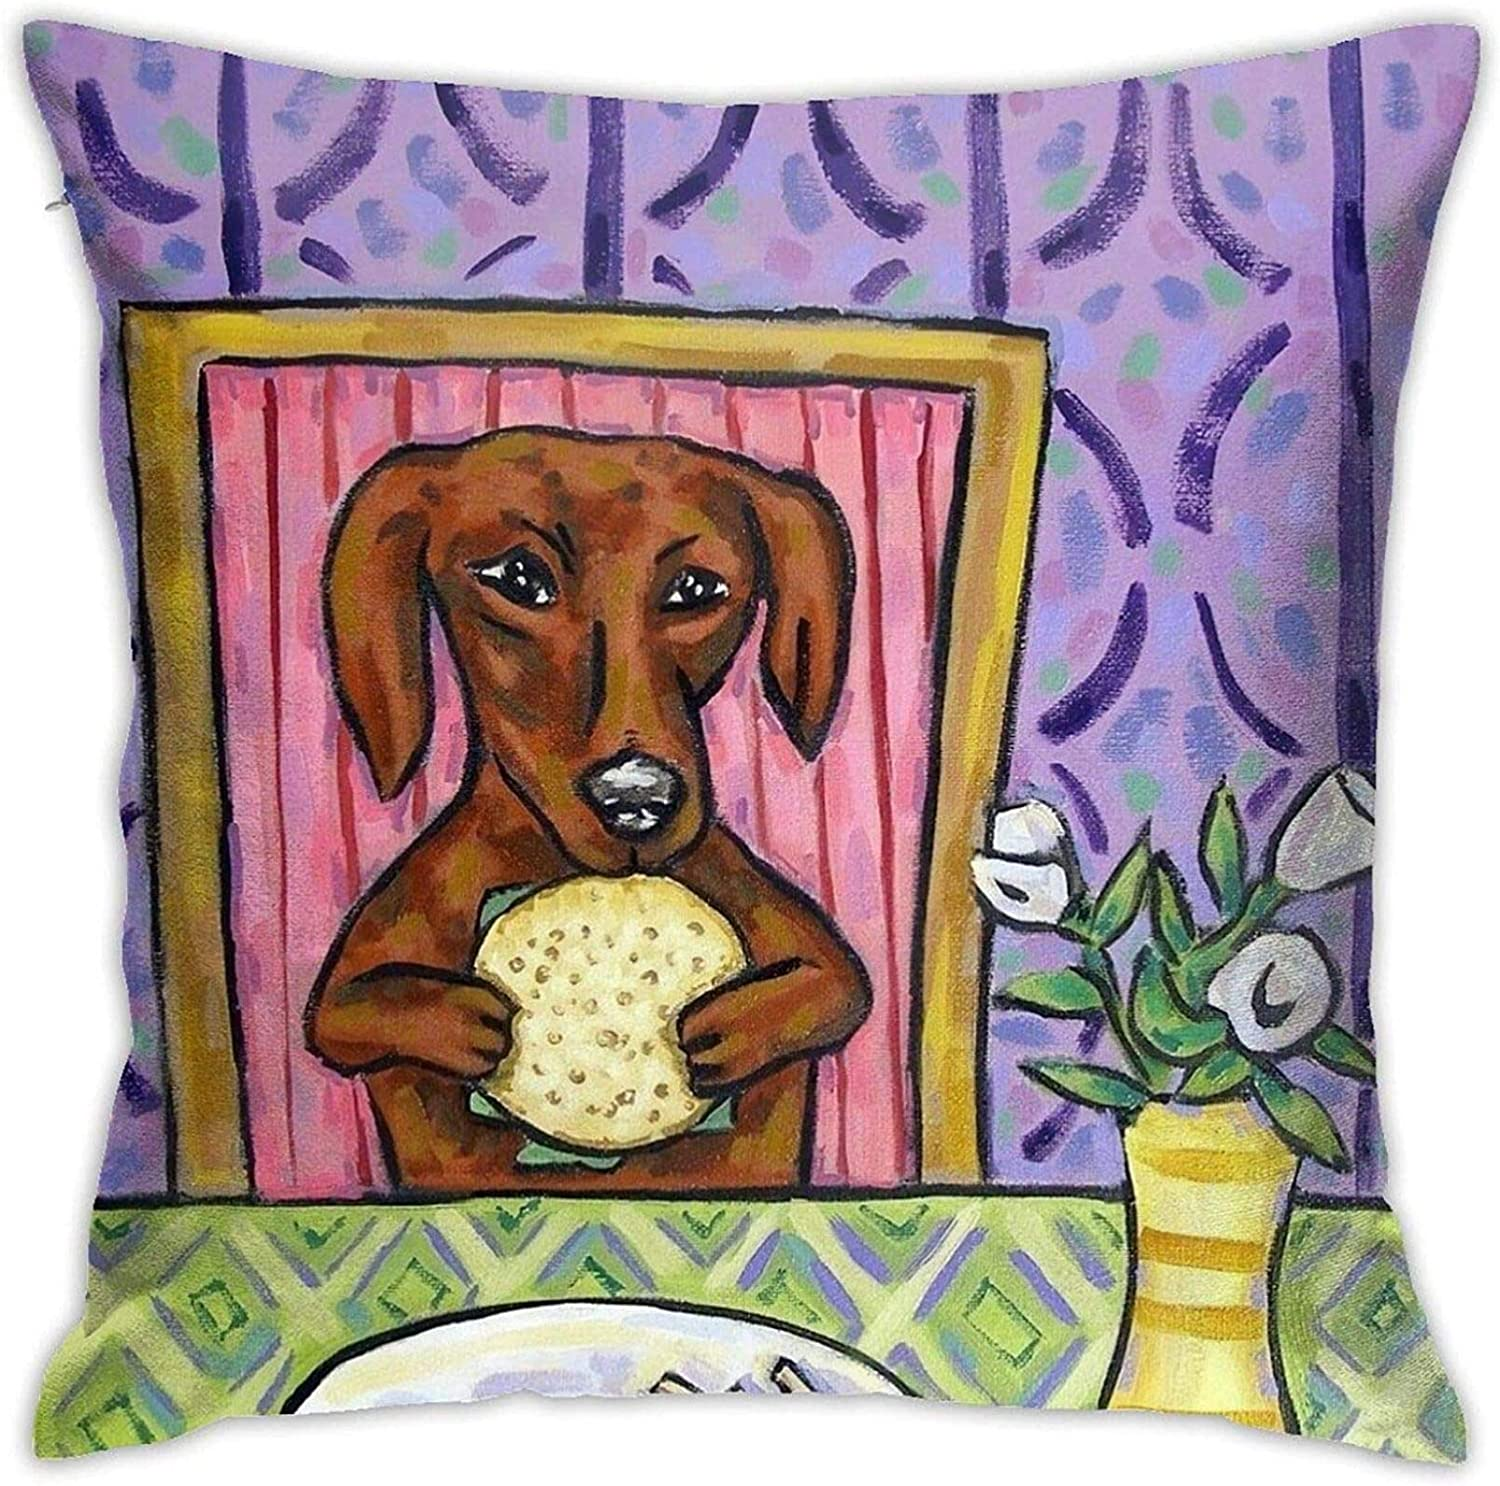 Andy Pansy Dachshund Ugliest Ugly FUUNY Red Food Art Dog Pattern Throw Pillow Covers Cushion Cover Pillowcase for Sofa Couch Decor Home Decor 18x18 Inch (45 X 45cm)